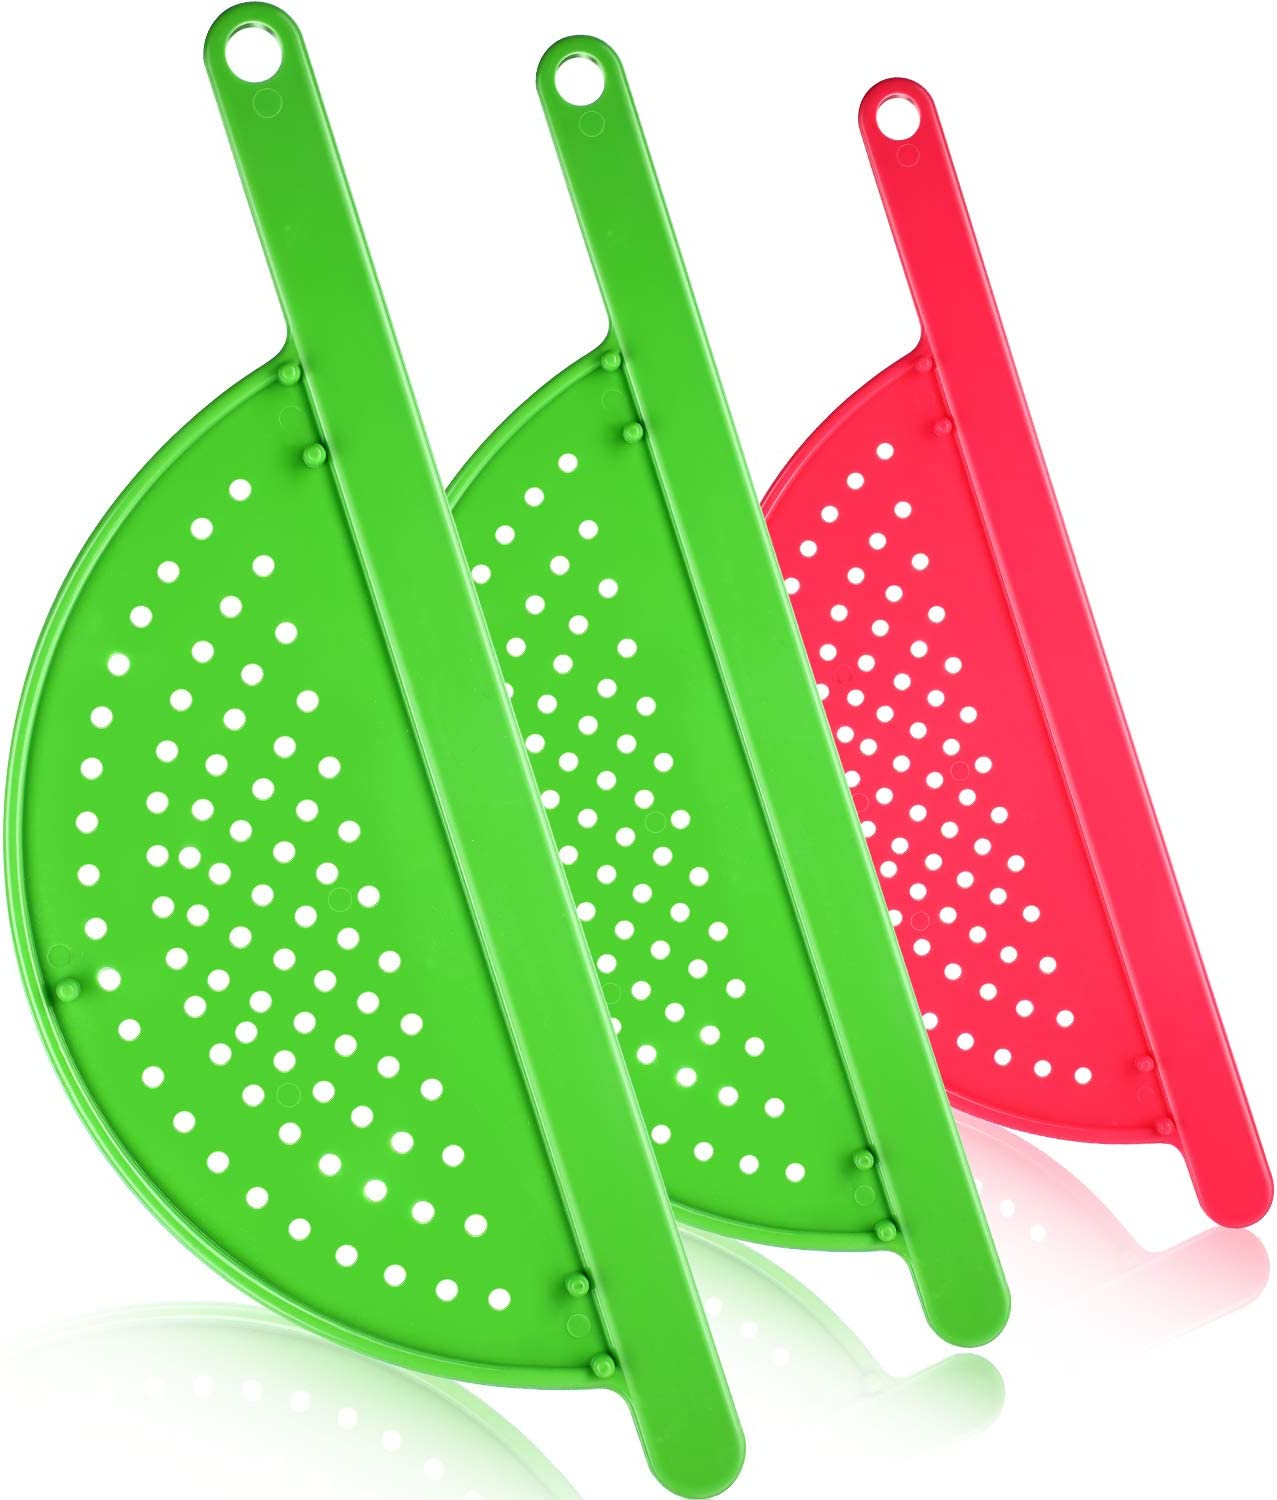 3 Pieces Pot Drainer with Handle Hand Held Pan Pot Strainer Plastic Pot Side Strainer Pasta Pot Drainers for Noddles Fruit Veggies and More, Fits up to 9 Inches